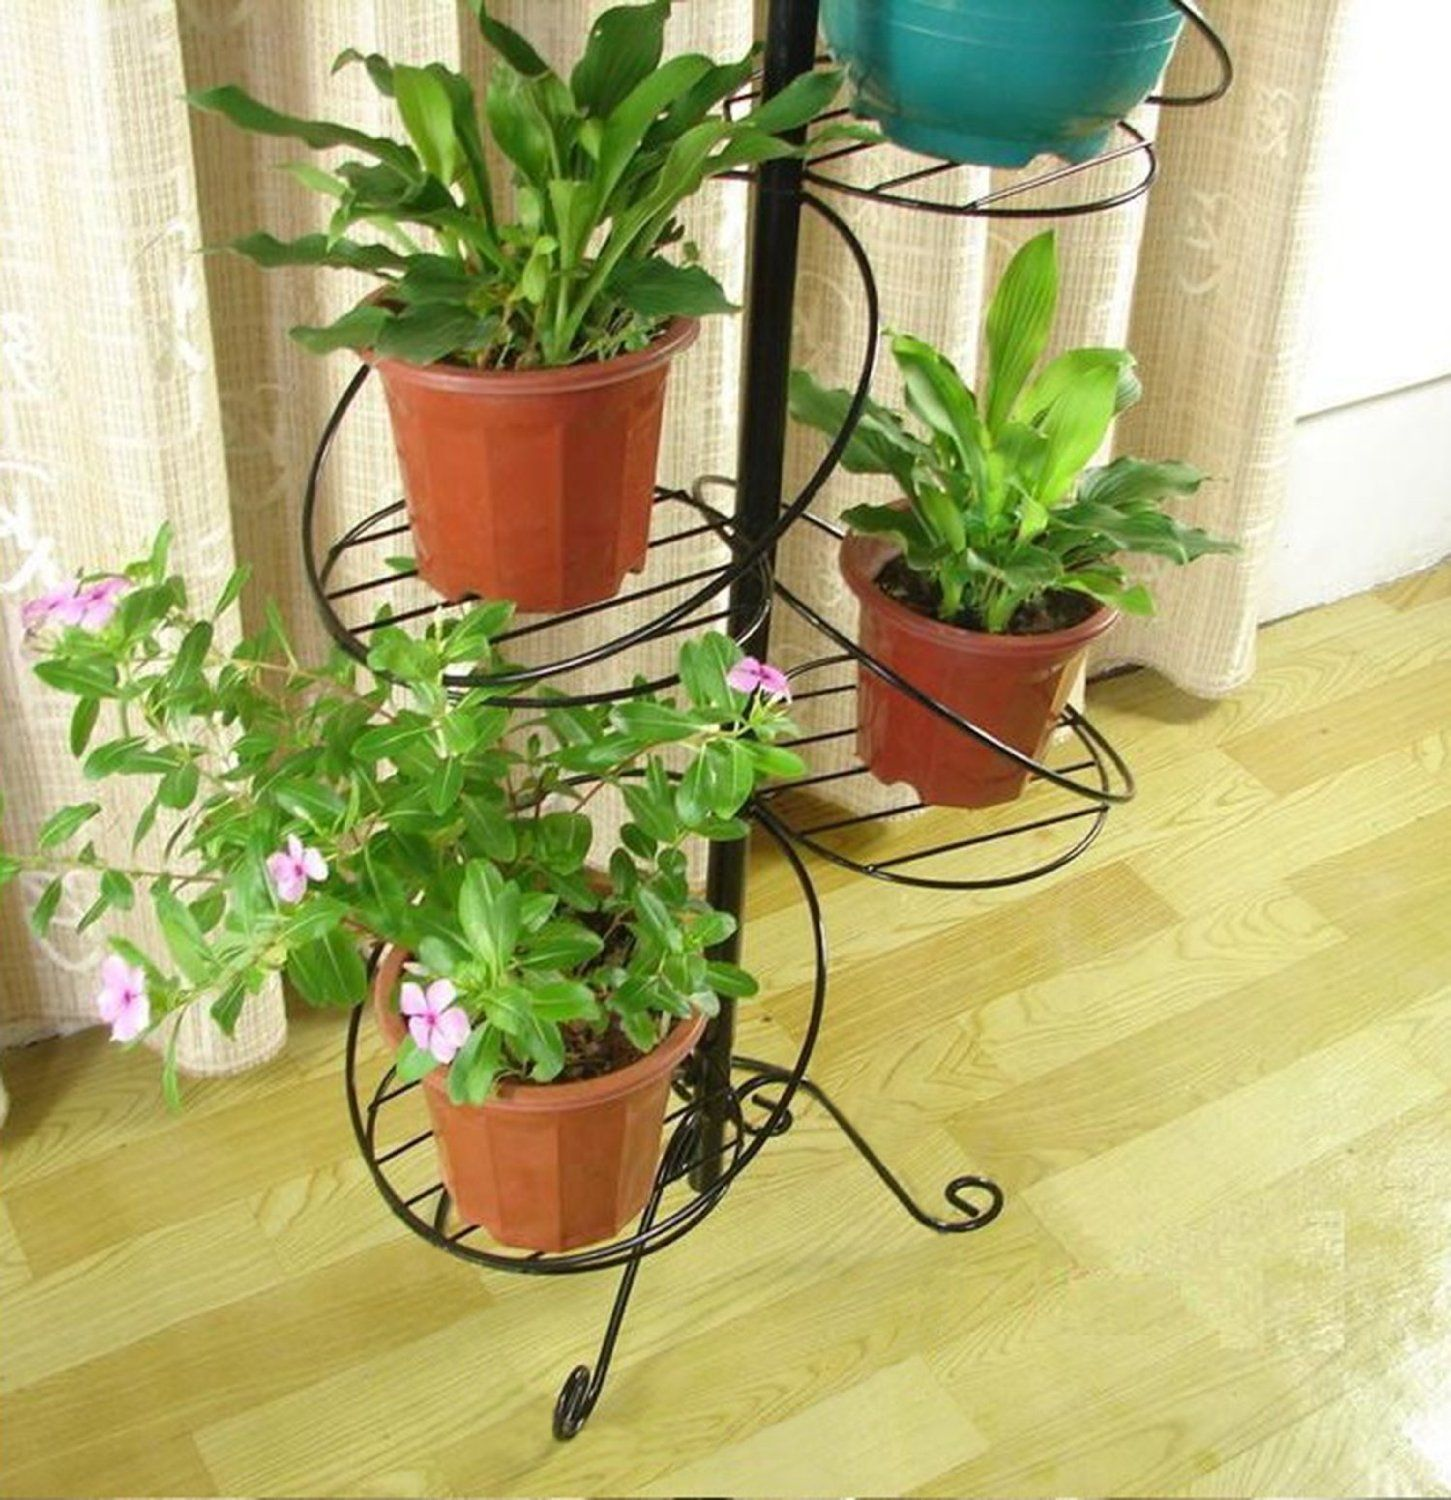 Amazon Garden Pots And Planters Amazon White Spiral Design 7 Tier Metal Planter